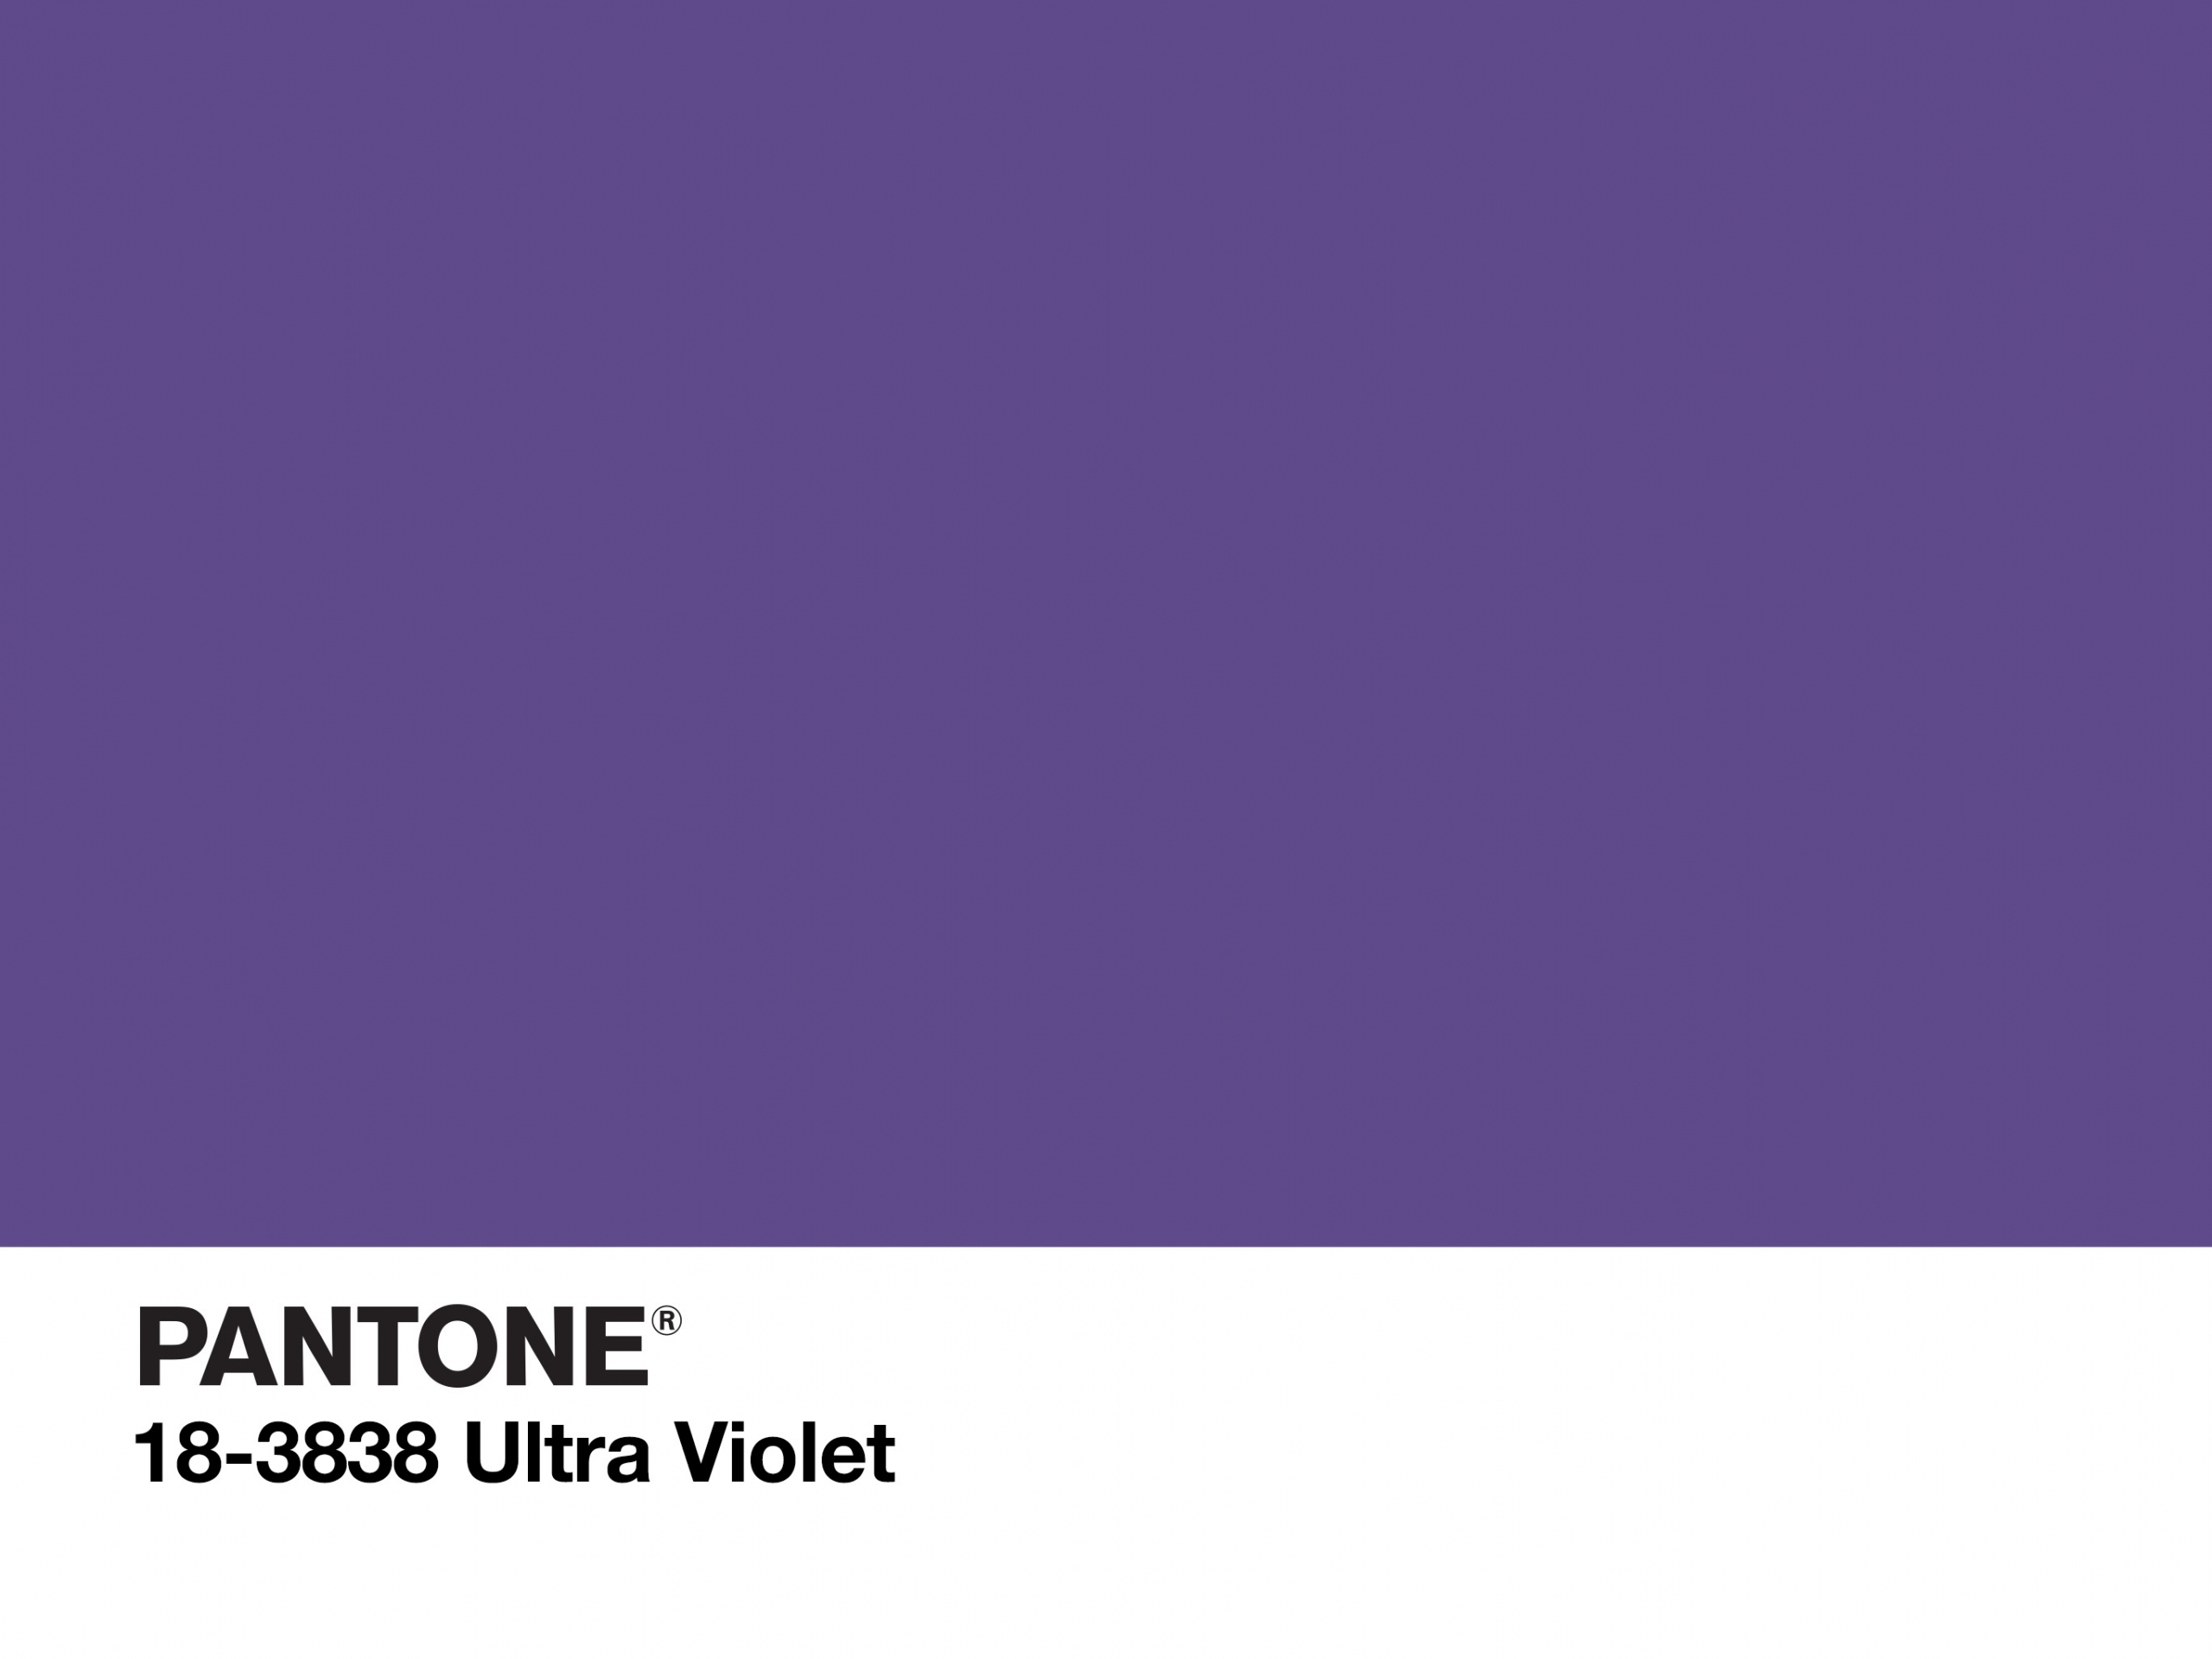 PANTONE-Color-of-the-Year-2018-ultra-violet-18-3838-v1-2732x2048